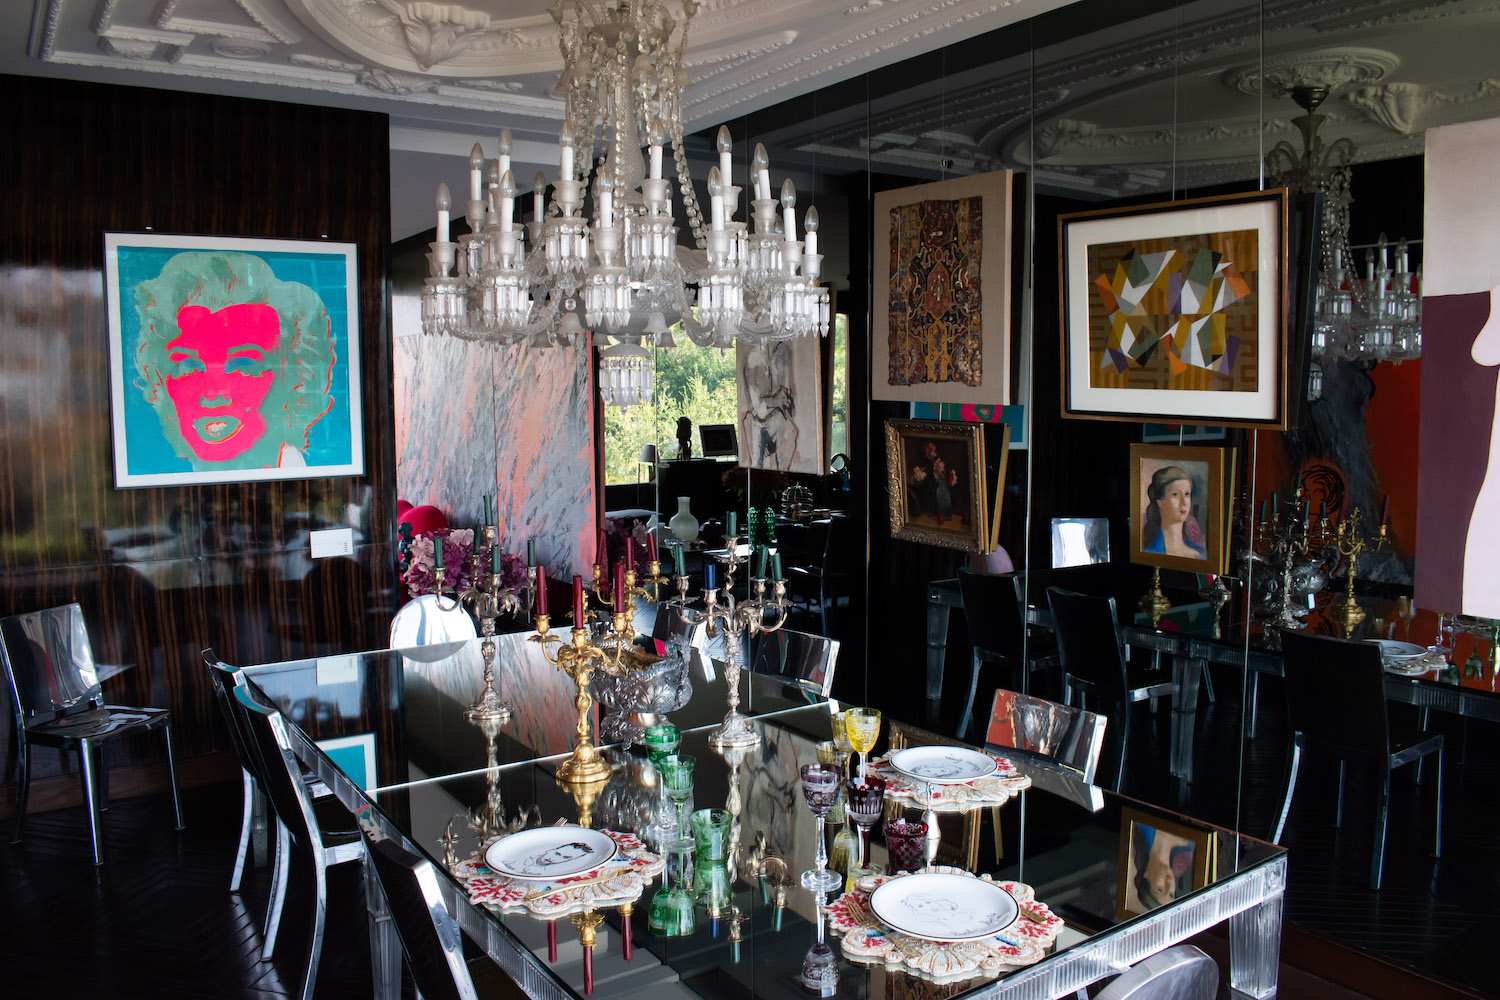 """Andy Warhol, """"Marilyn (F&S 30)""""; Grace Weinrib, """"Pencil (triptych) (partially seen in the back room); Enrique Castro Cid, """"Untitled""""; and Josefina Guilisasti, """"Fragmento Persa S XVII""""; Matilde Pérez, """"Flores"""" and """"Untitled""""; Graciela Aranis, """"Untitled""""; Roser Bru, """"Los Tiempos Han Cambiado"""" (partially seen on right side of image); Philippe Starck Emeco Hudson Chairs; Baccarat dinning table by Philippe Stark; and Baccarat chandelier Philippe Starck. Photo: Andrés Herrera. Courtesy of Juan Yarur."""